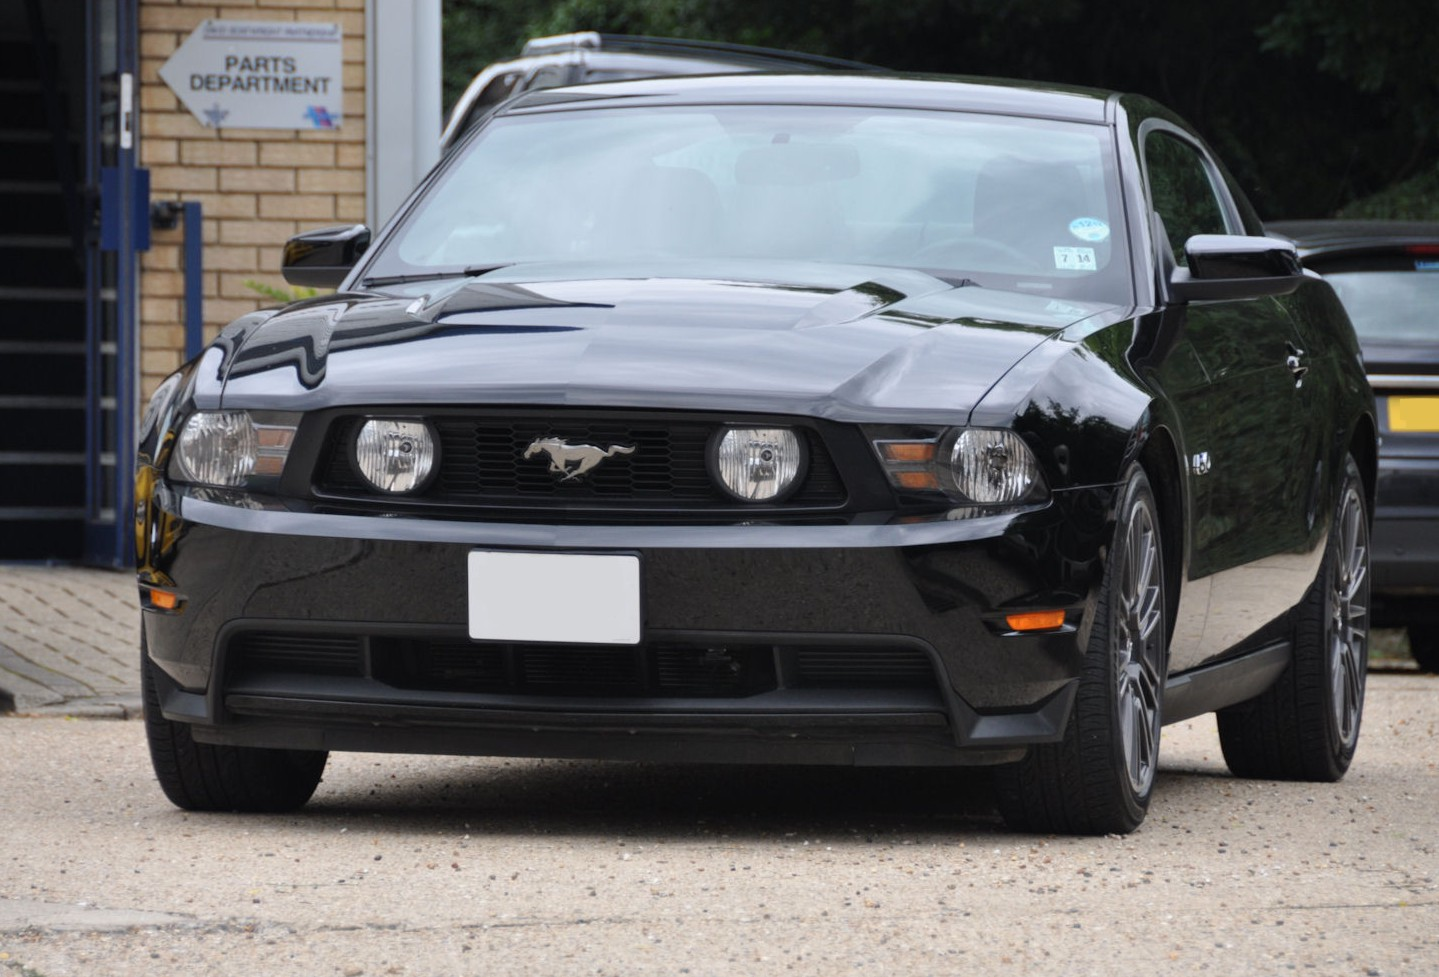 2011 60 ford mustang gt premium 5 0 litre automatic v8 fully loaded 11 000 miles only. Black Bedroom Furniture Sets. Home Design Ideas